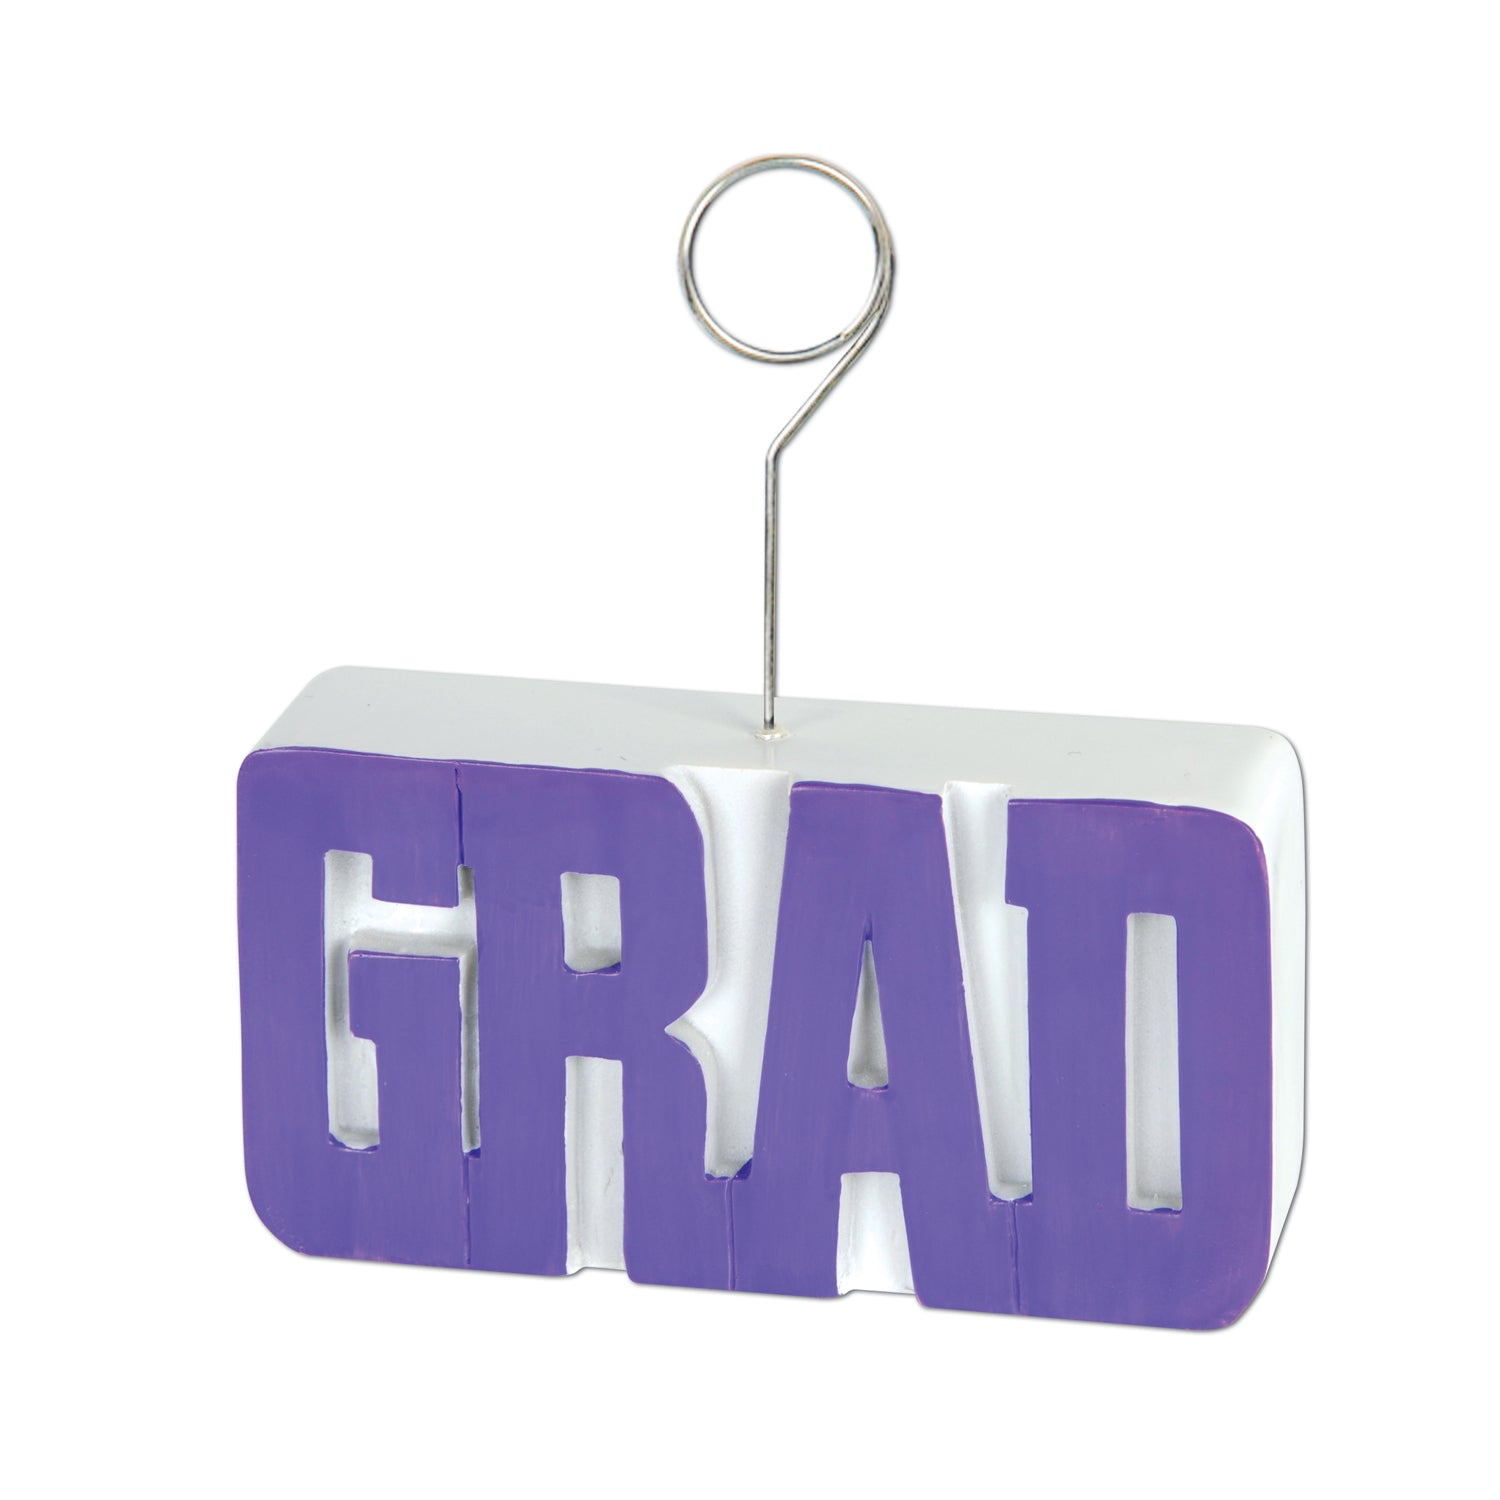 Grad Photo/Balloon Holder, purple by Beistle - Graduation Theme Decorations